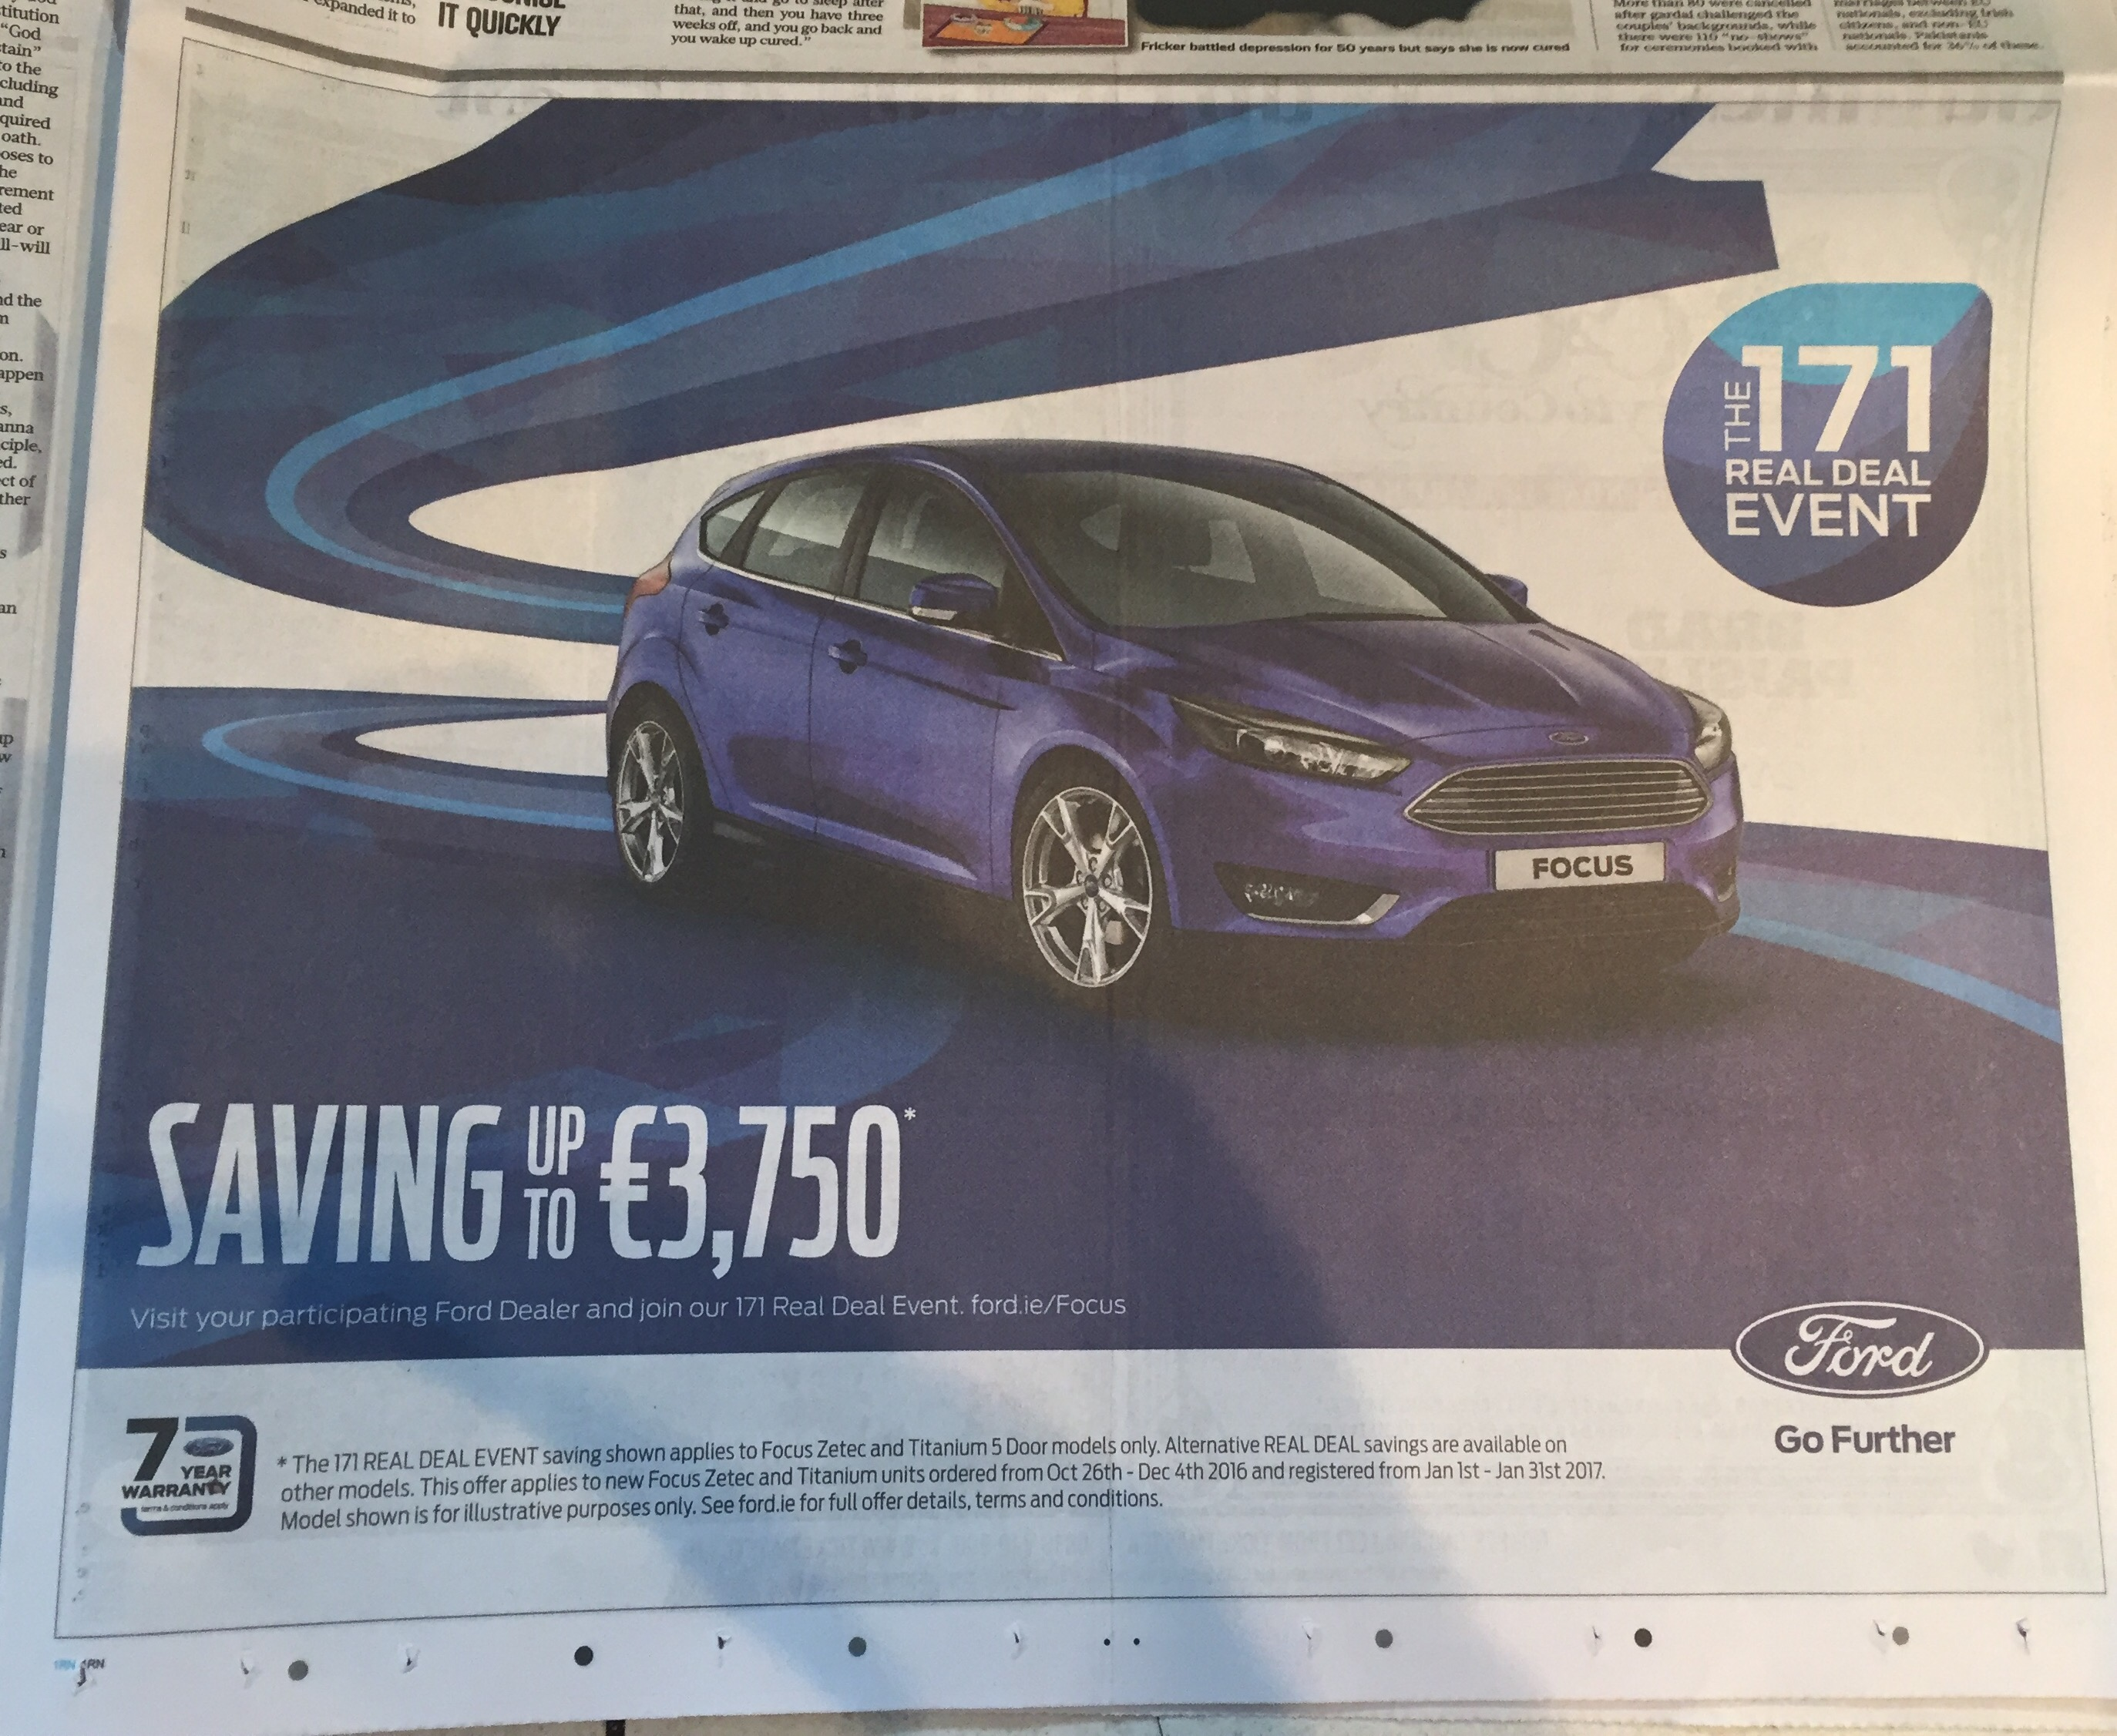 Ford – the 171 real deal event – saving up to €3750